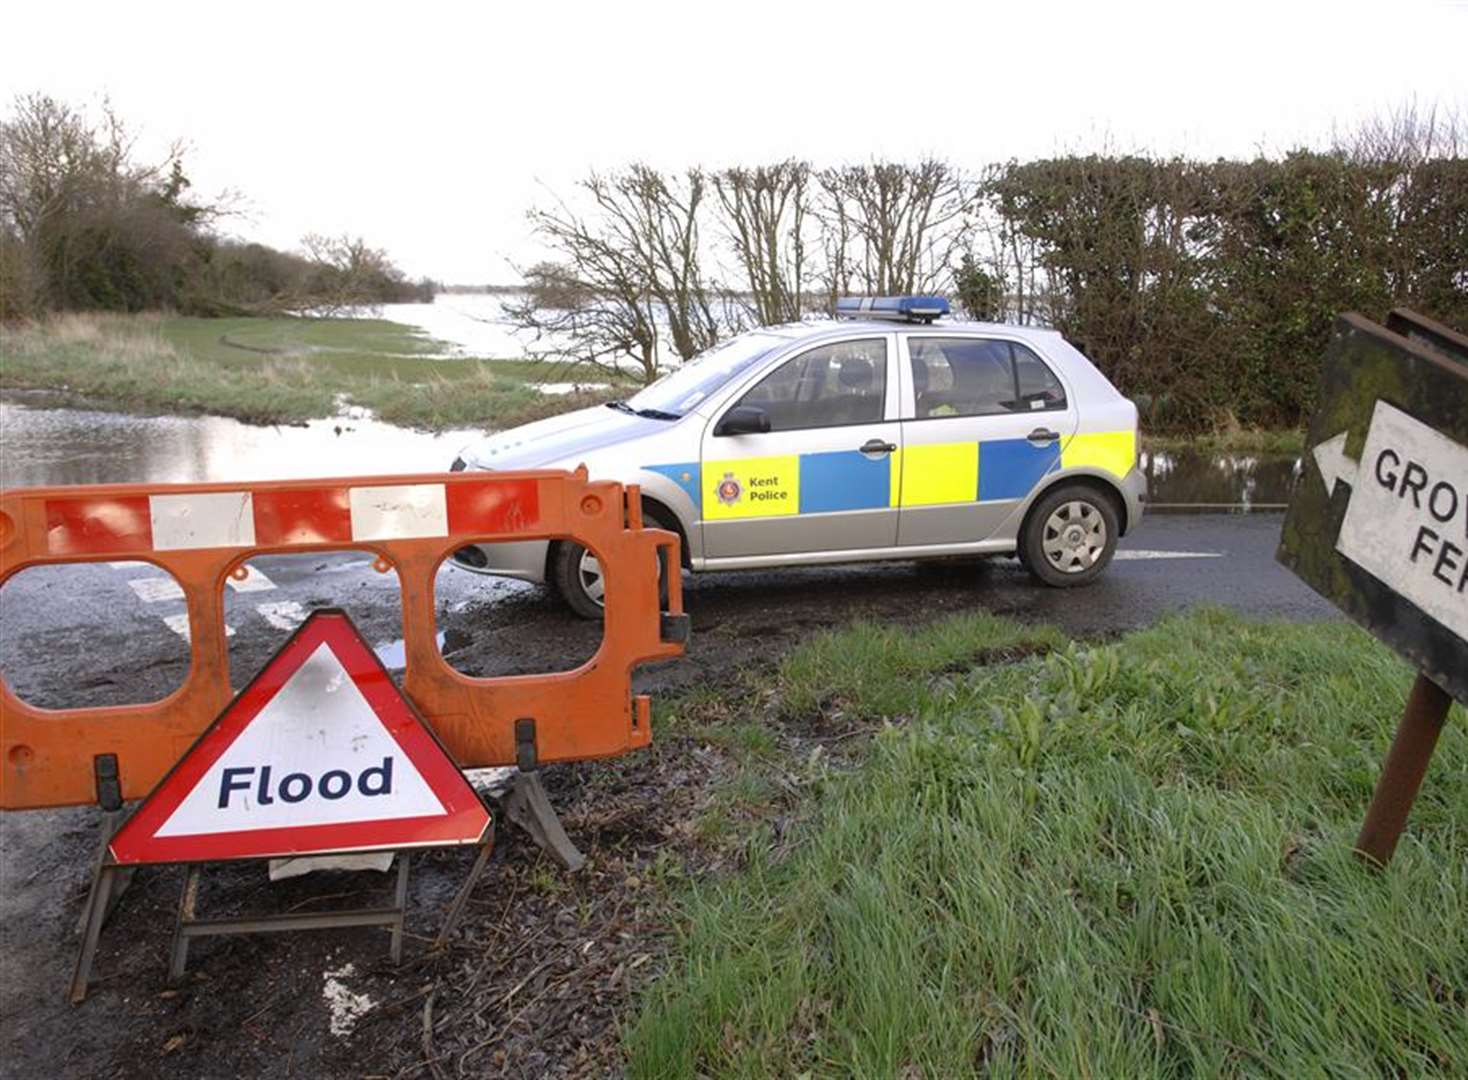 Trio rescued from car stuck in flooding after ignoring road closure sign